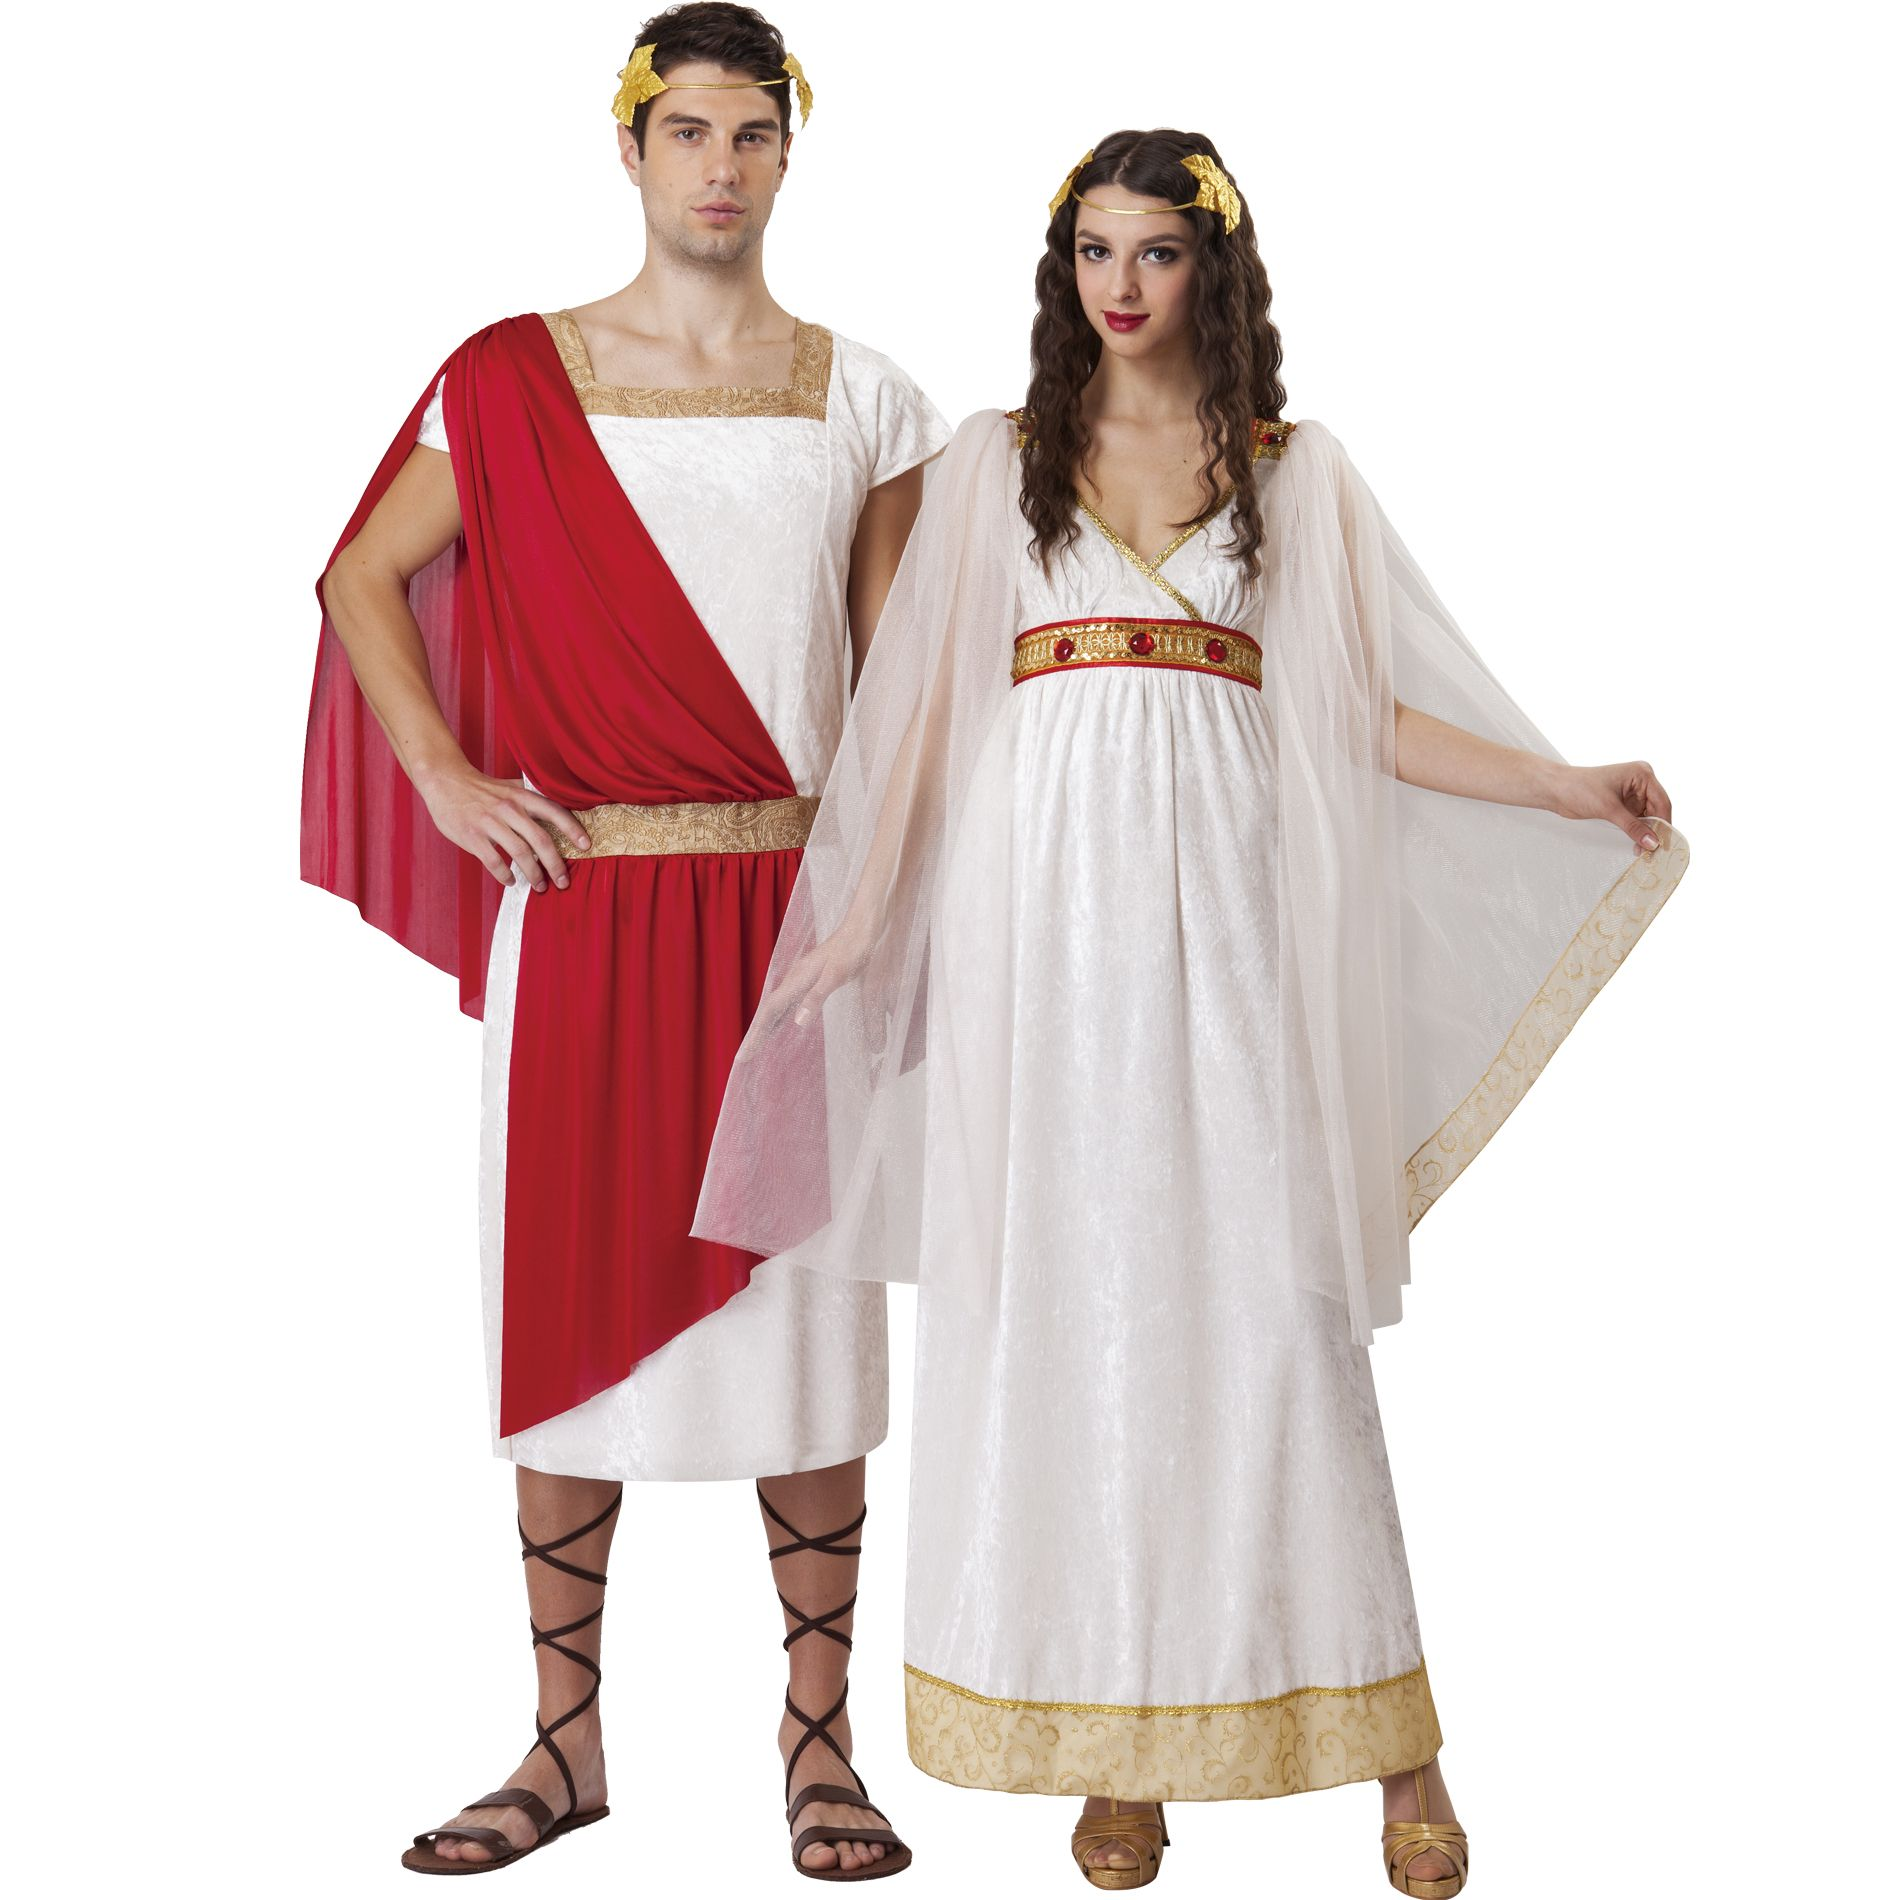 Ancient Greek Clothing: History: This Is A Animated Picture Of Kids In Ancient